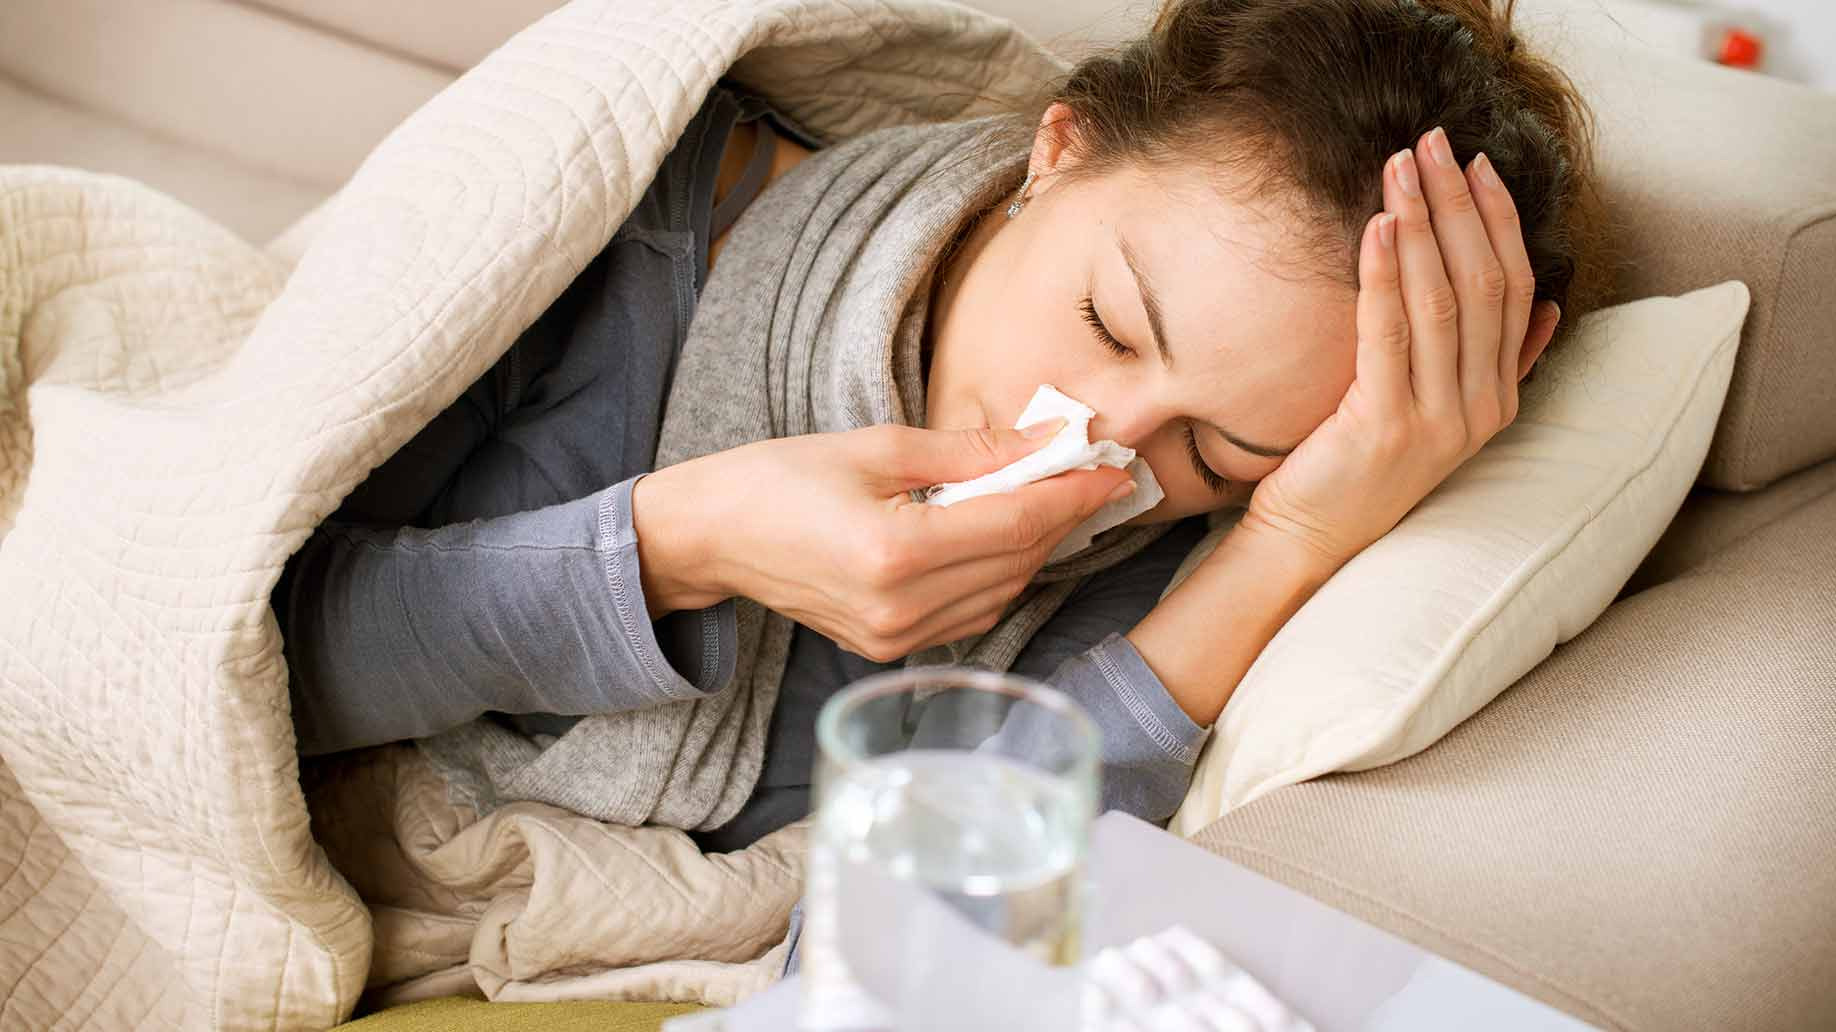 5 Ways to Care for your Mouth During the Cold and Flu Season